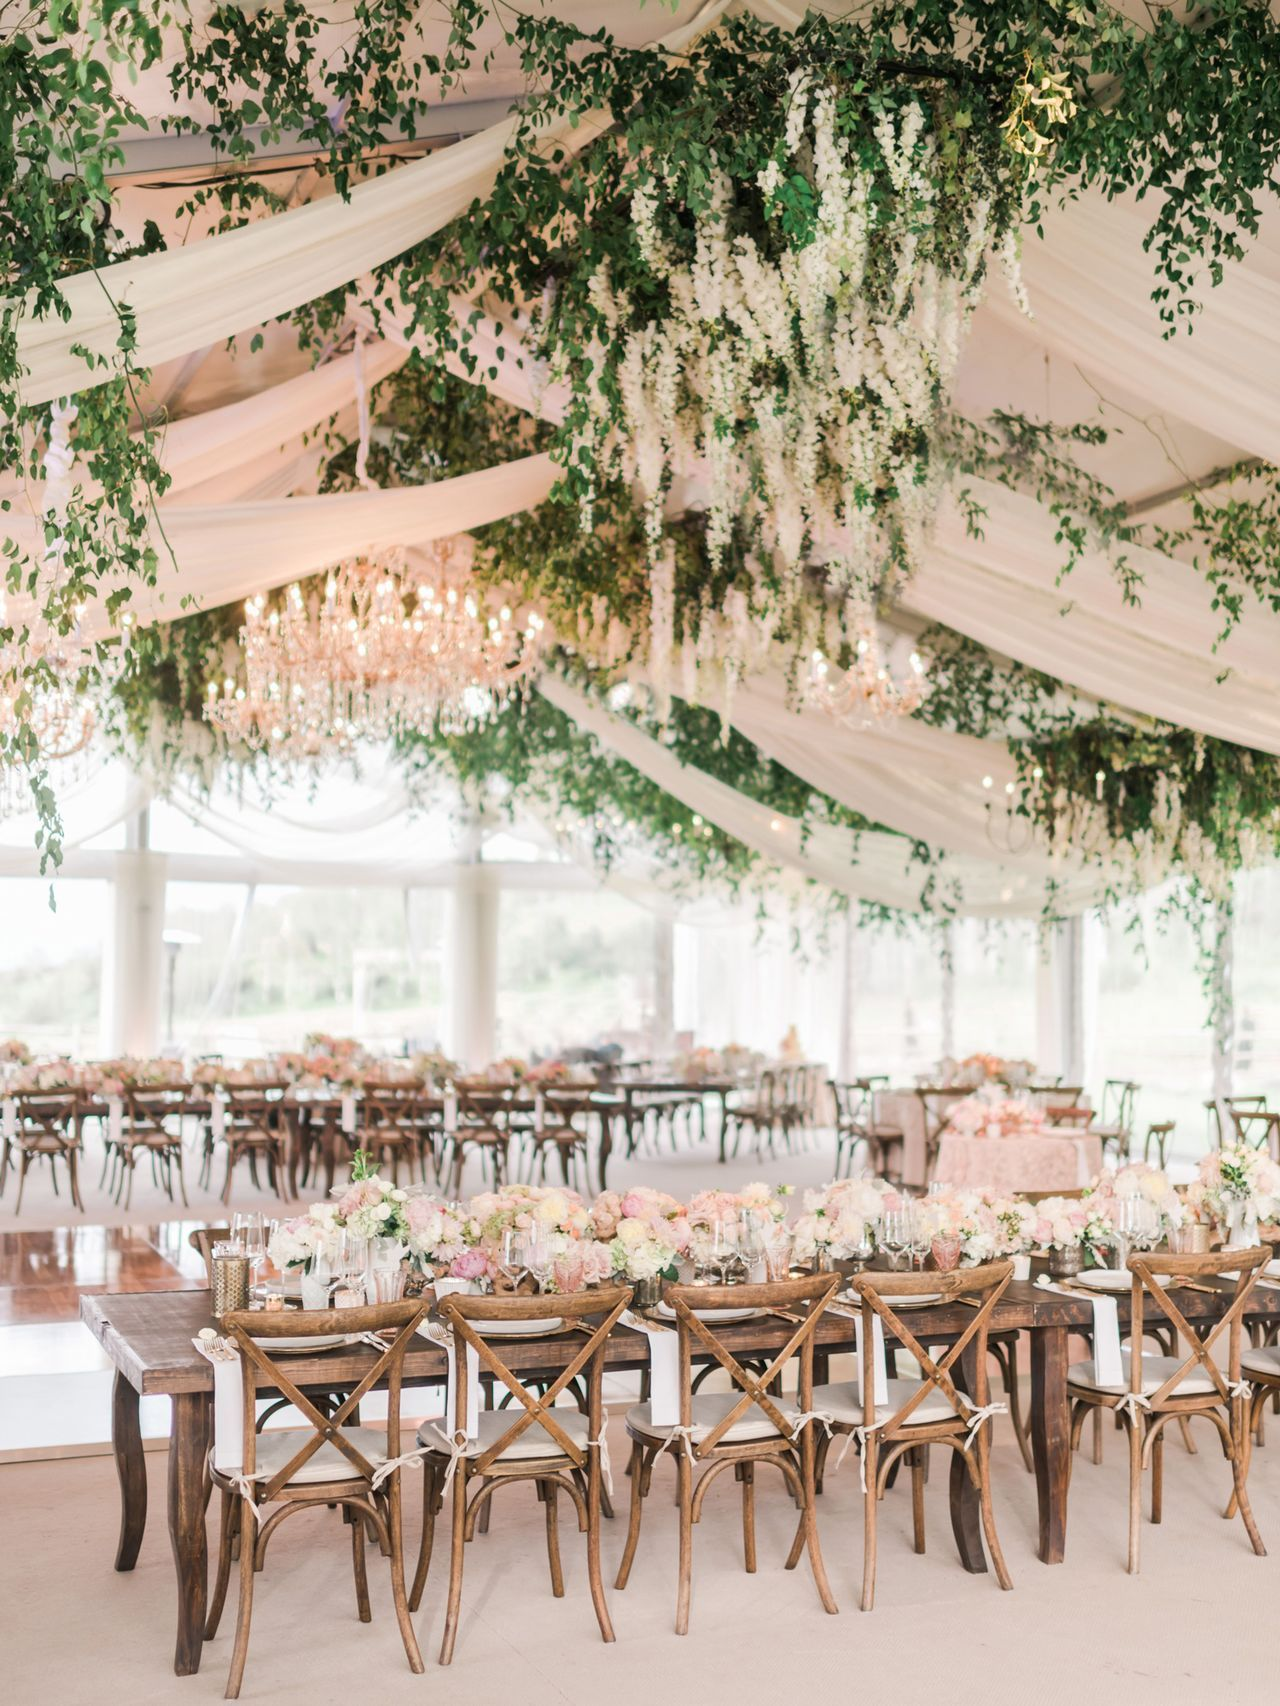 18 of Our Favorite Over-the-Top Wedding Ideas #weddings